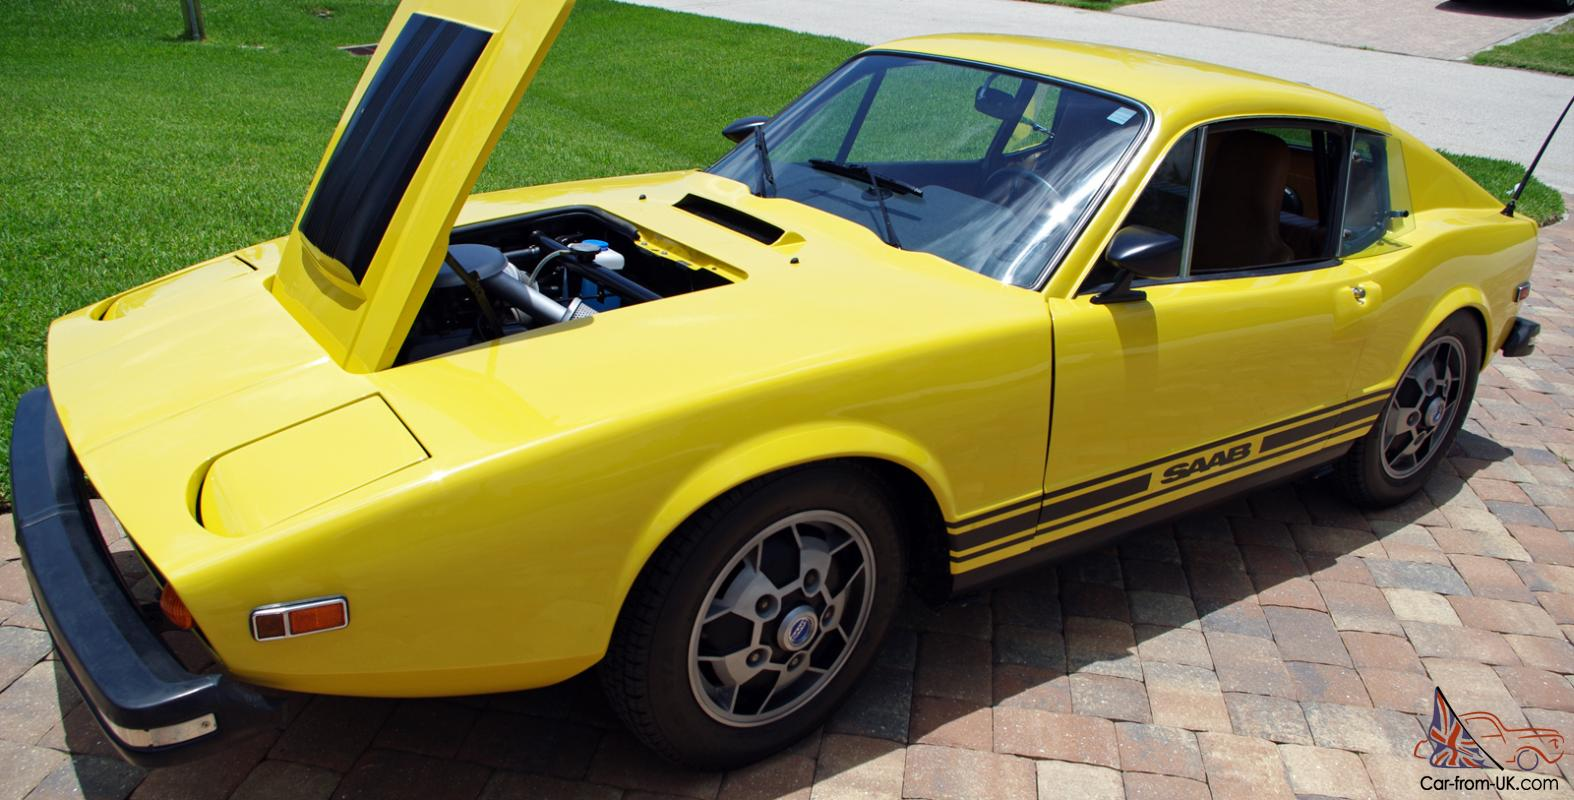 Cool Old Classic Car: 1974 Saab Sonett III Vintage Classic Sports ...